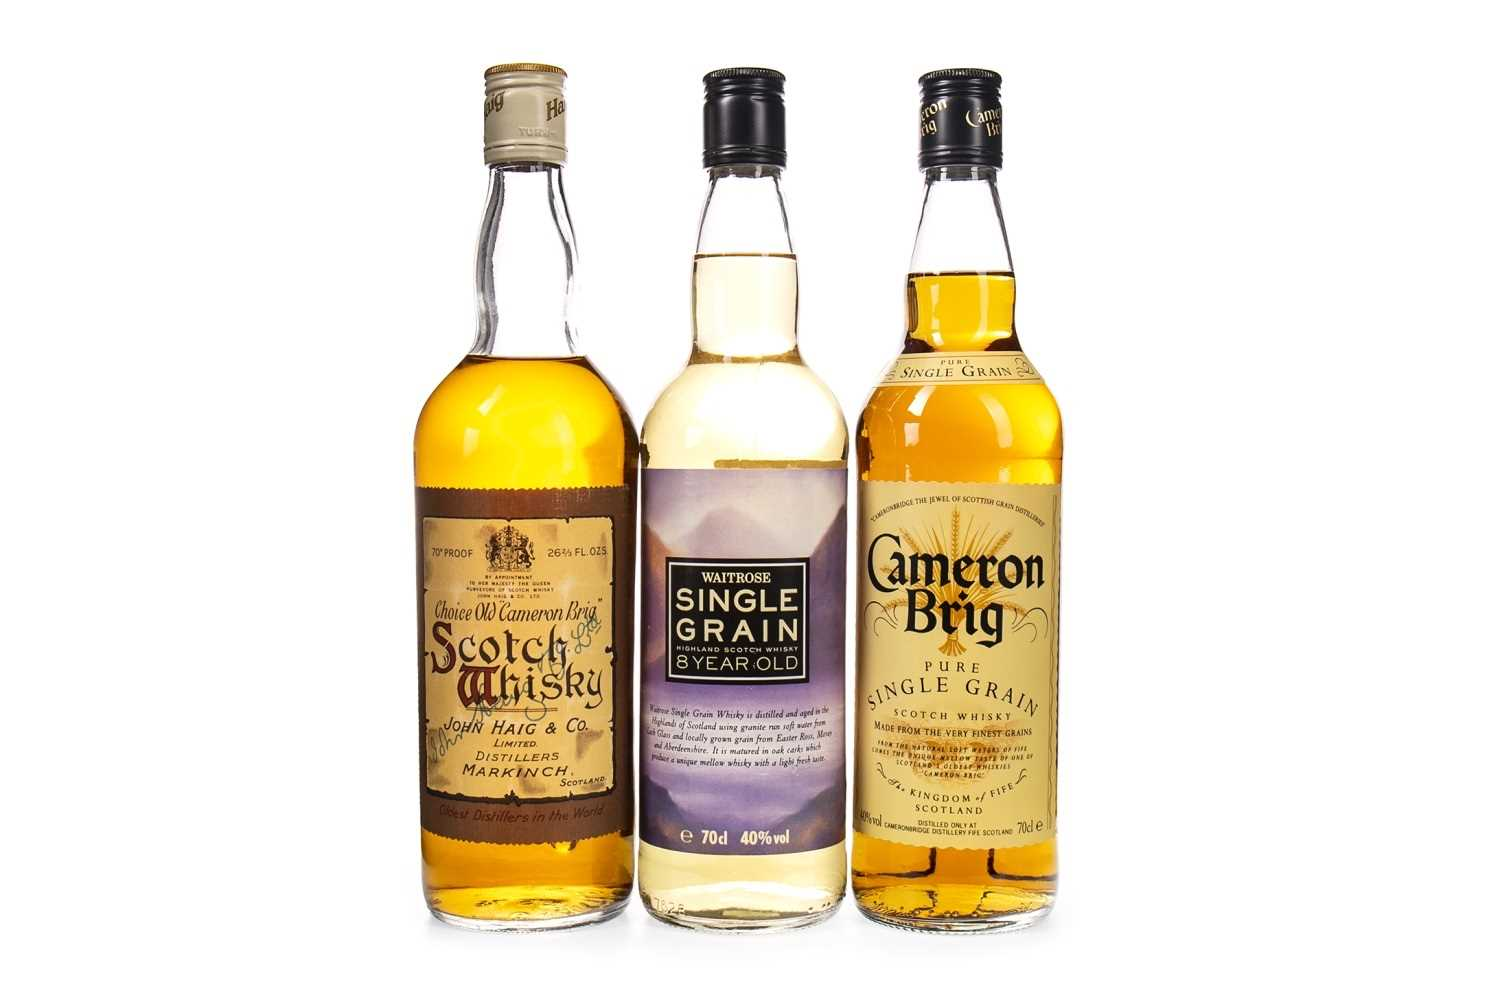 Lot 423-CHOICE OLD CAMERON BRIG, CAMERON BRIG AND WAITROSE SINGLE GRAIN 8 YEARS OLD